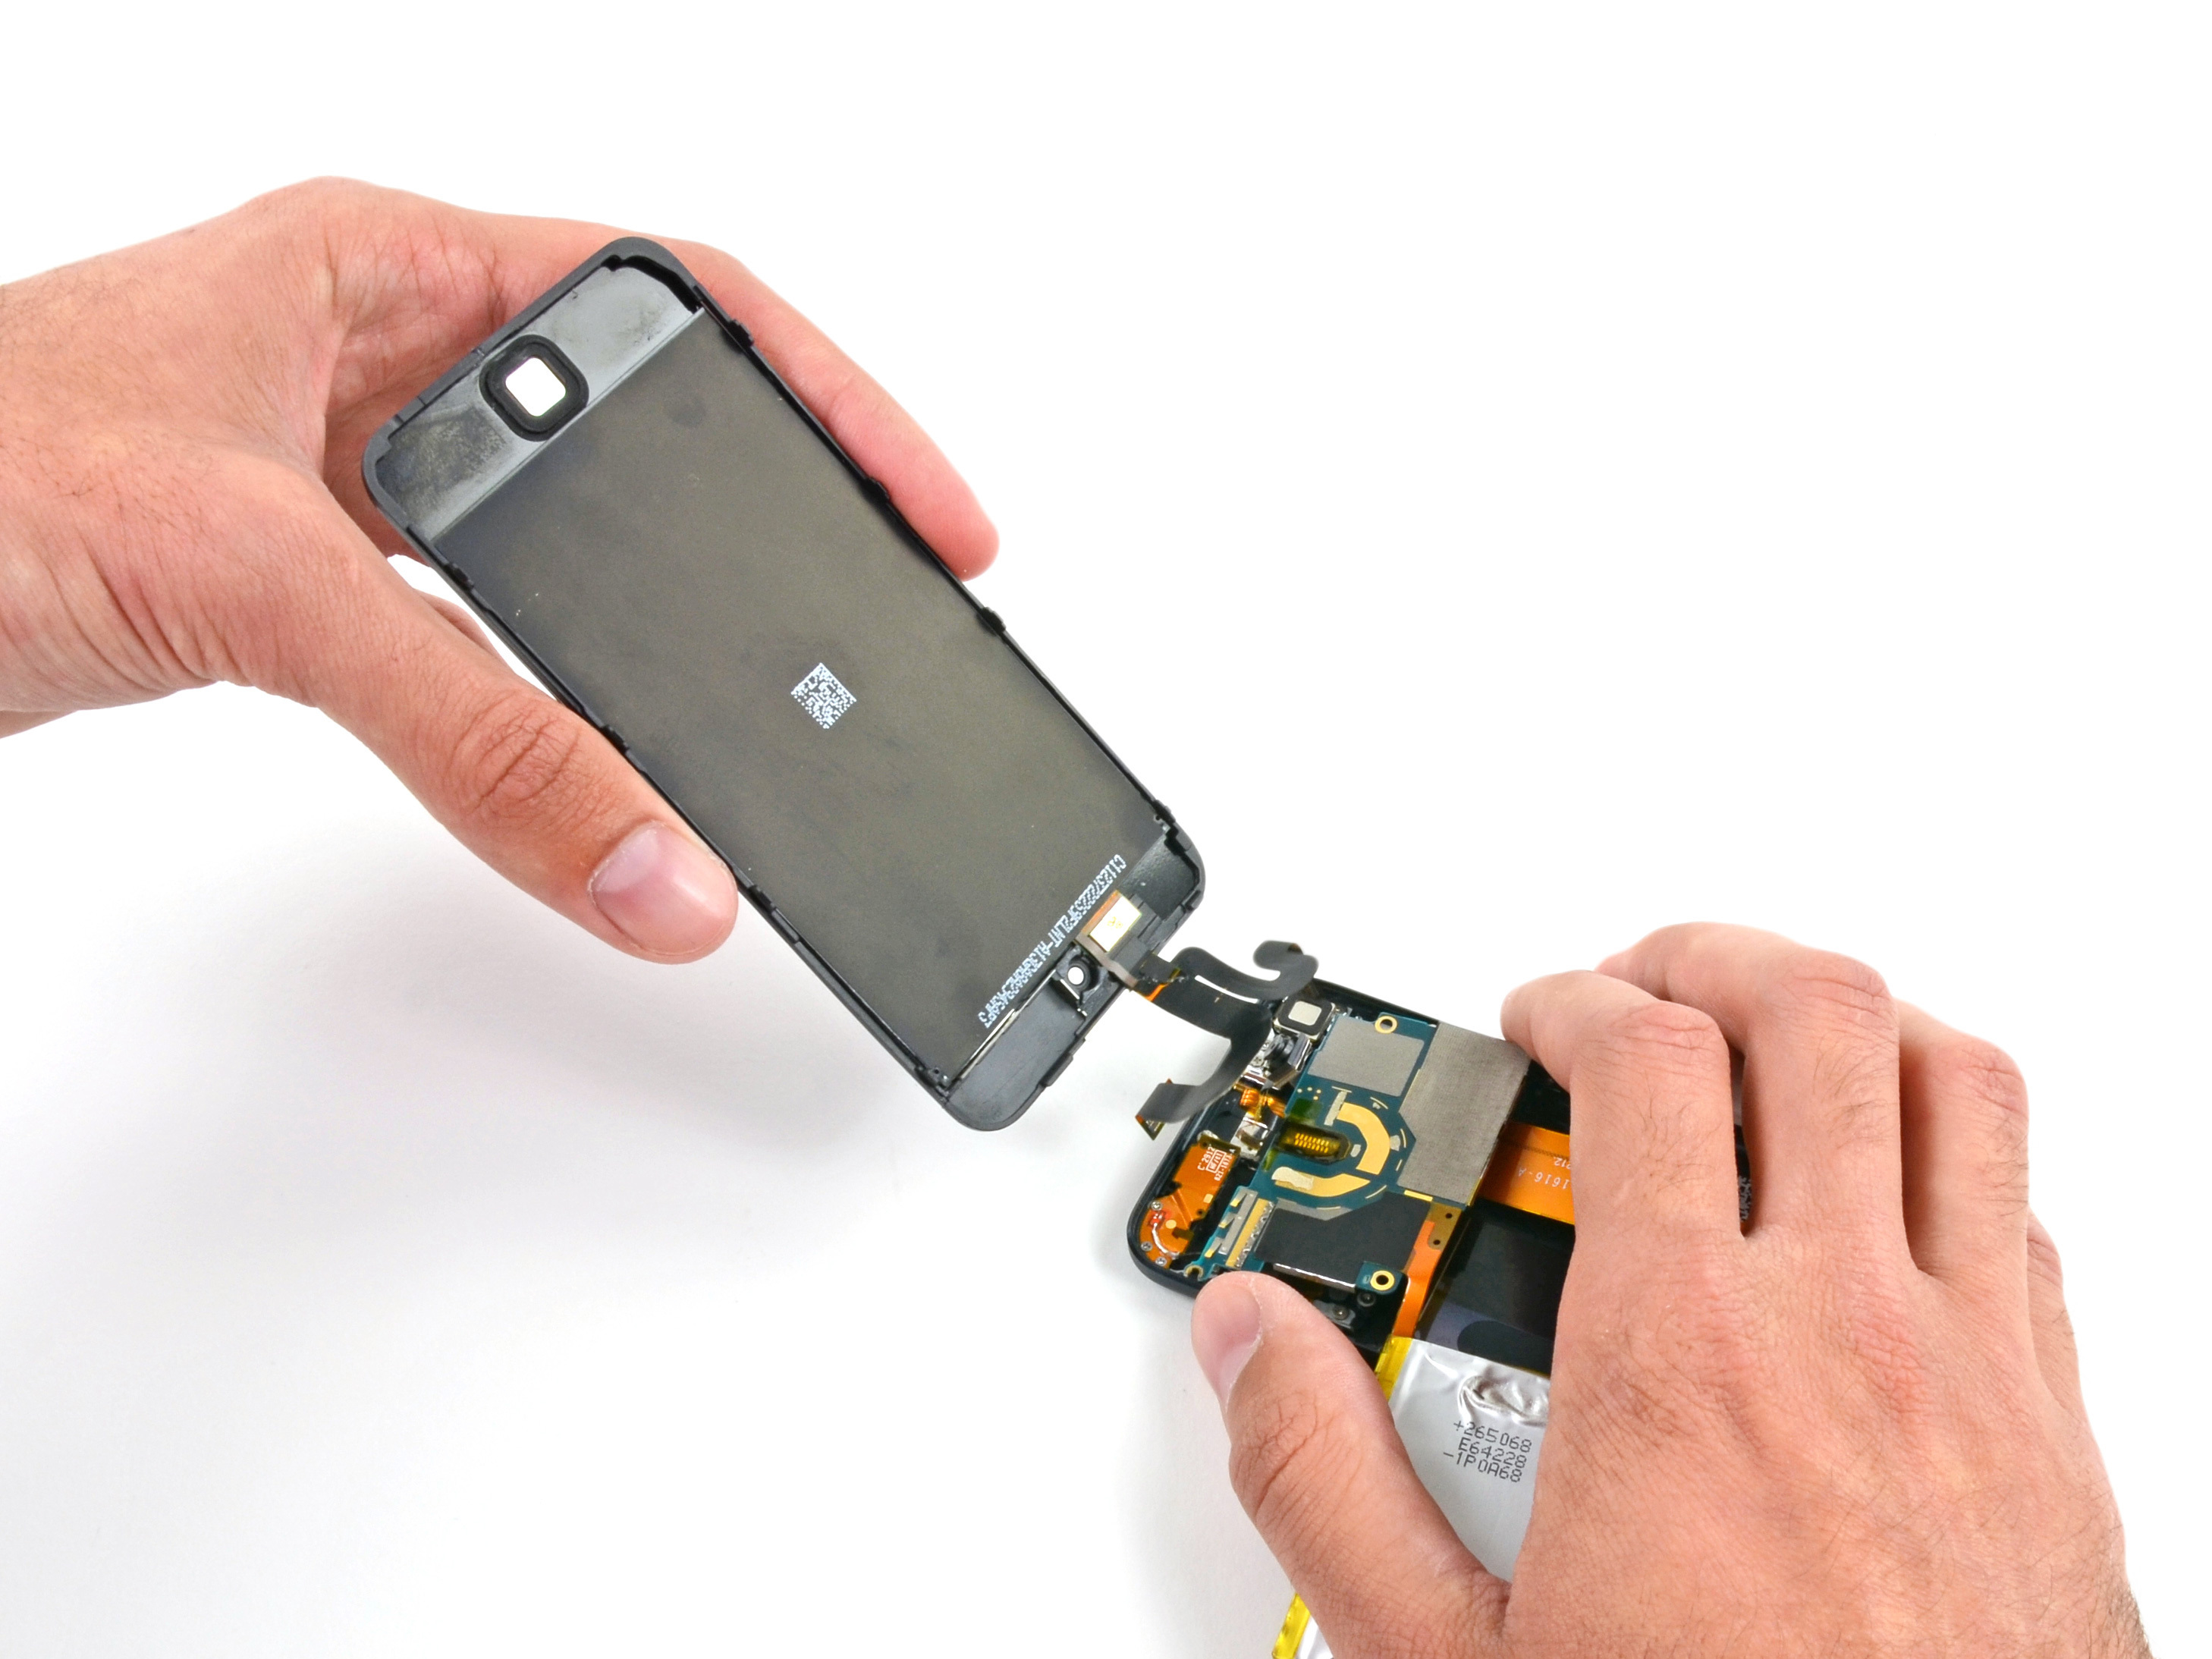 Ipod Touch 6th Generation Display Assembly Replacement Ifixit Apple 6 32gb Silver Repair Guide